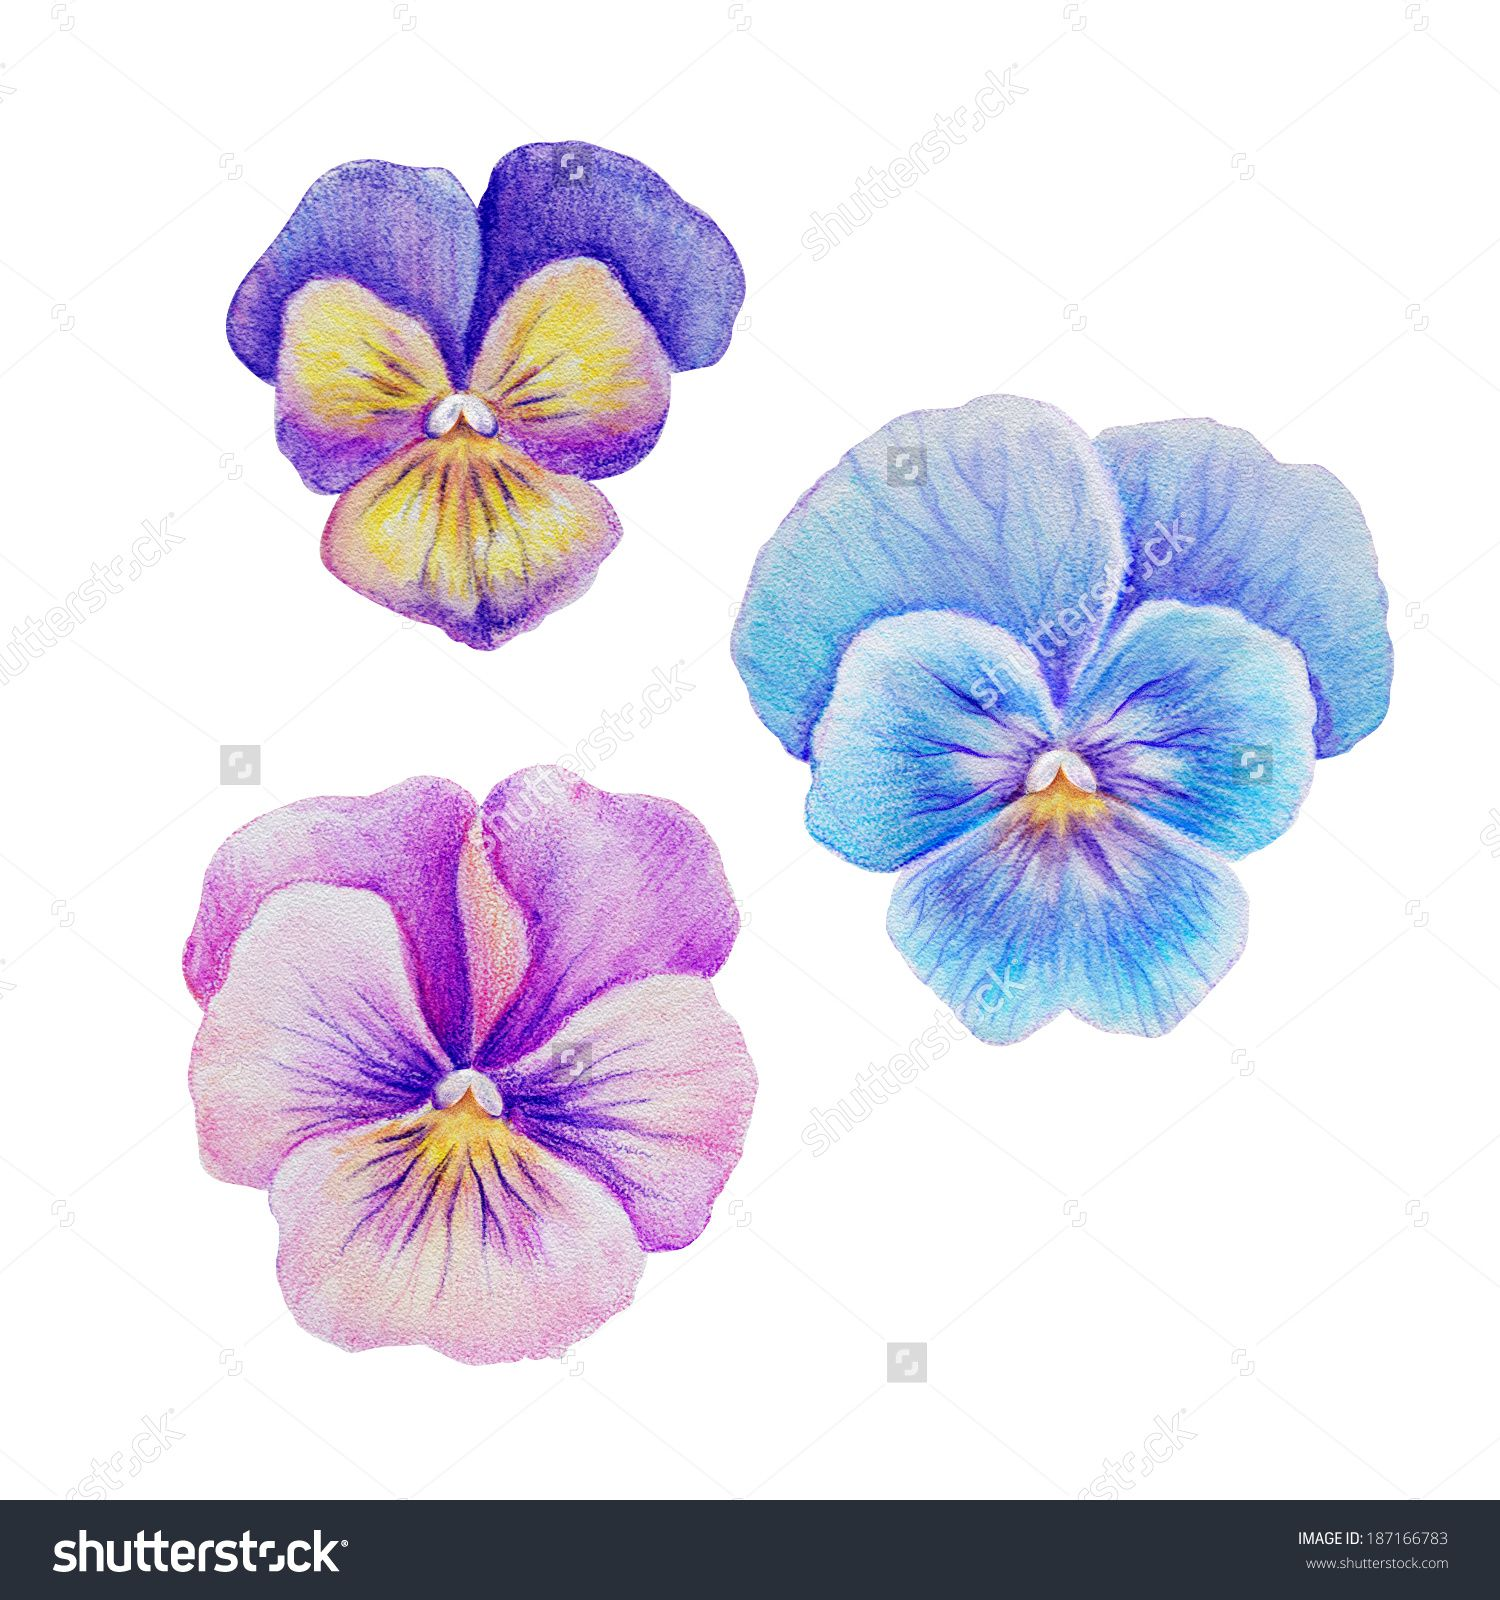 Stock Photo Pink Purple Violet Blue Pansy Viola Flowers Set Isolated Watercolor Illustration 187166783 Jpg 1 Purple Watercolor Pansies Watercolor Illustration